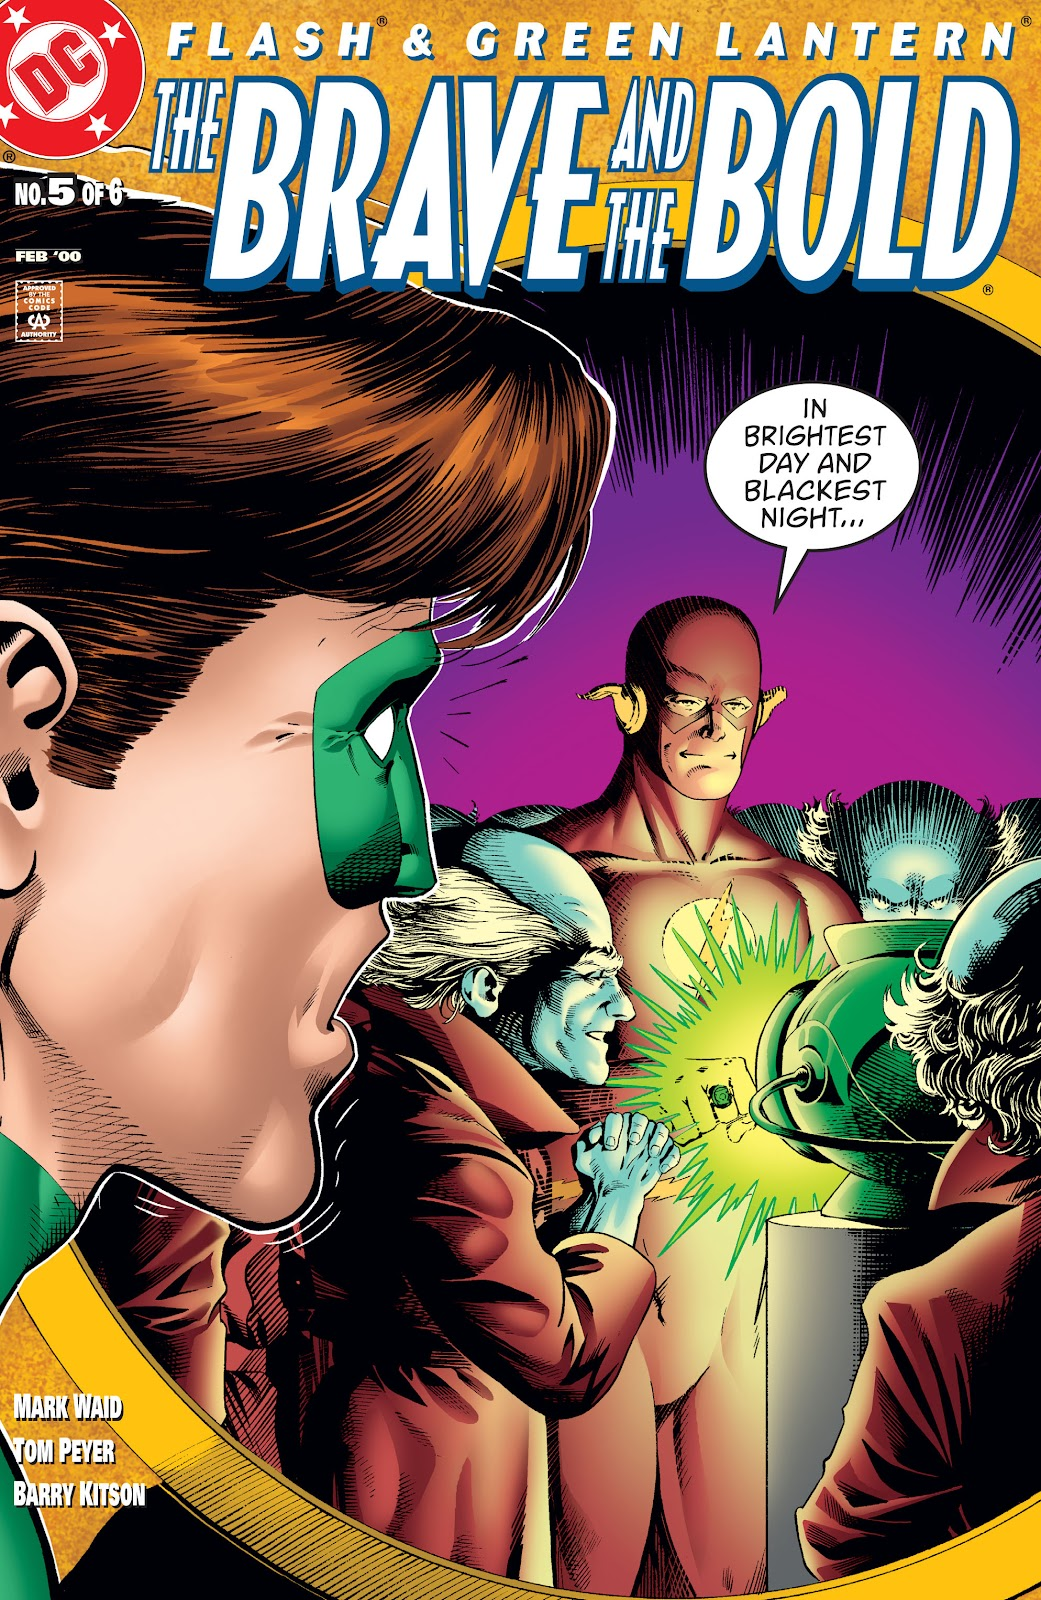 Flash & Green Lantern: The Brave and the Bold issue 5 - Page 1